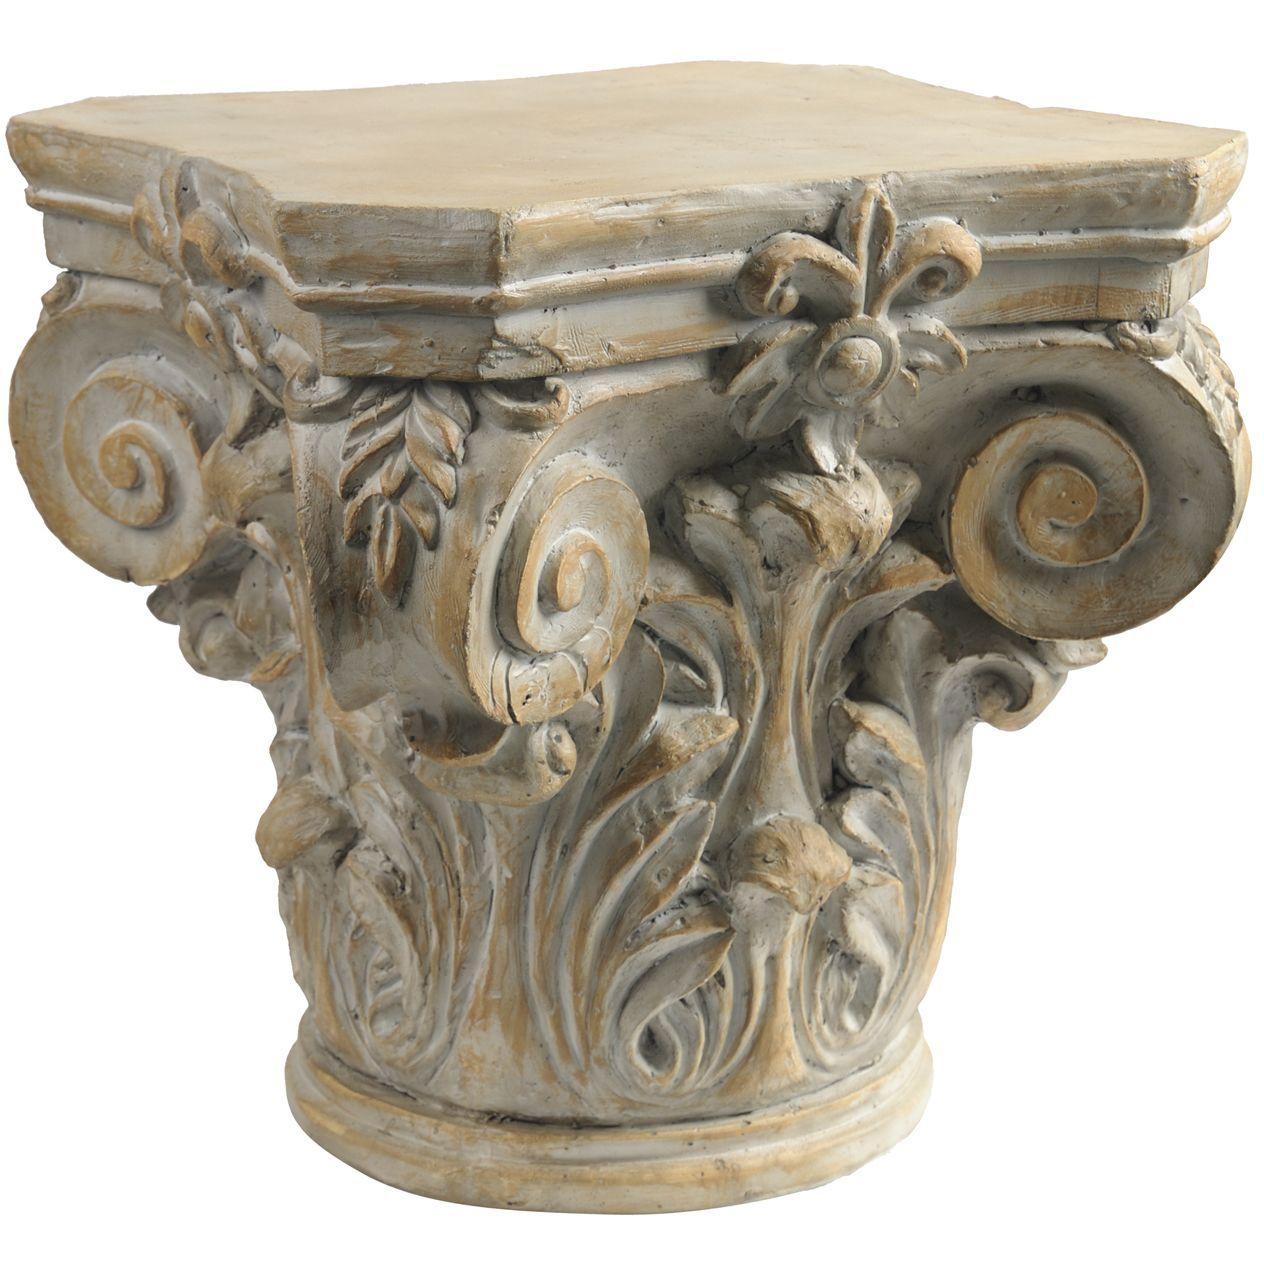 Beige Ceramic Roman Column Decorative Pedestal Roman